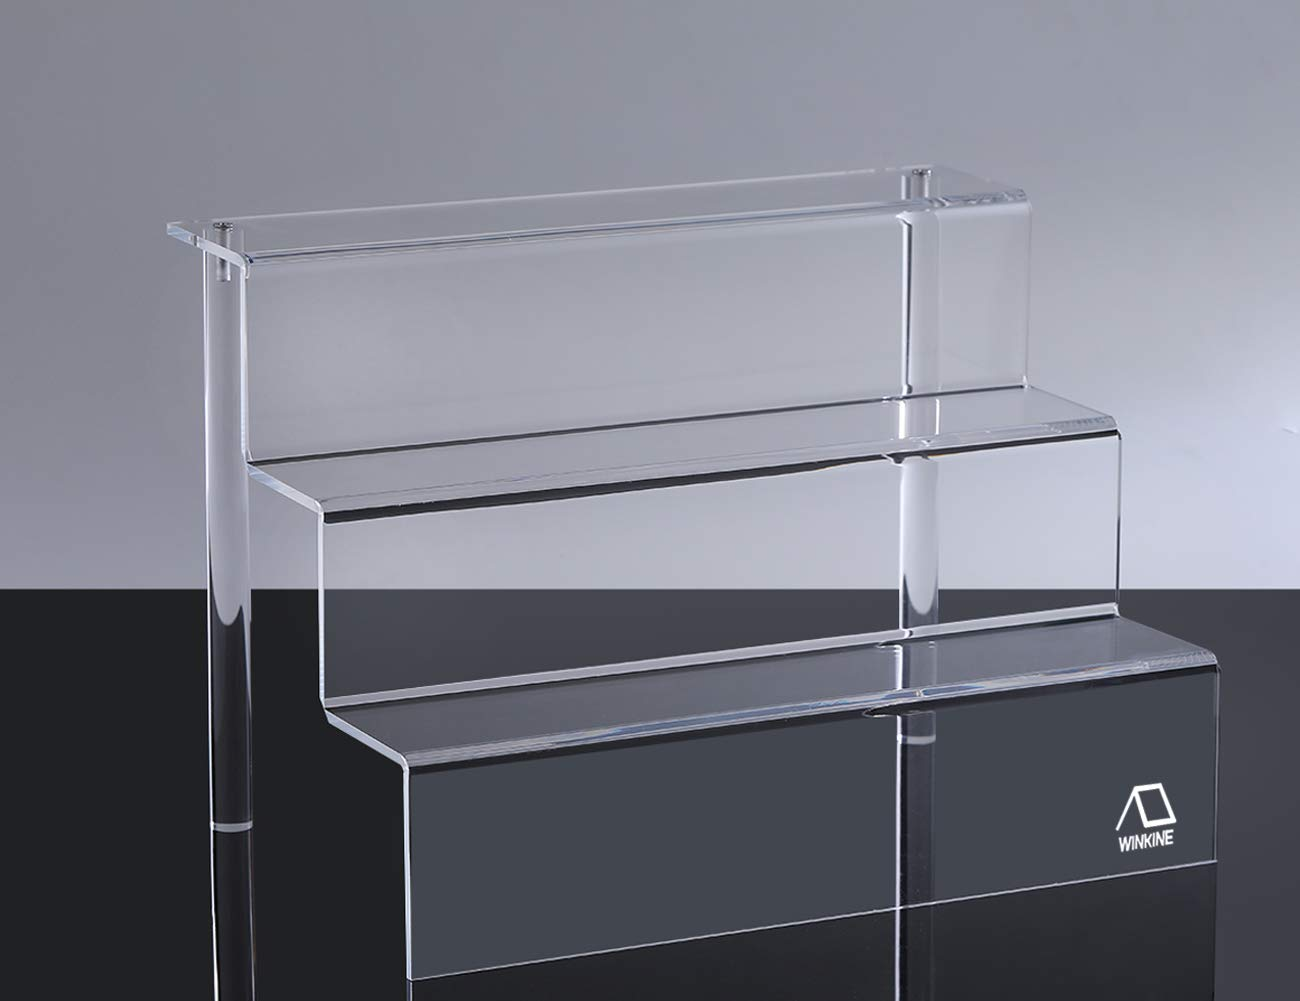 WINKINE 2 Pack Clear Acrylic Riser Display Shelf for Amiibo Funko POP Figures, 3-Tier Cupcakes Stand for Cabinet, Countertops, Table, Large(9x12 inch)